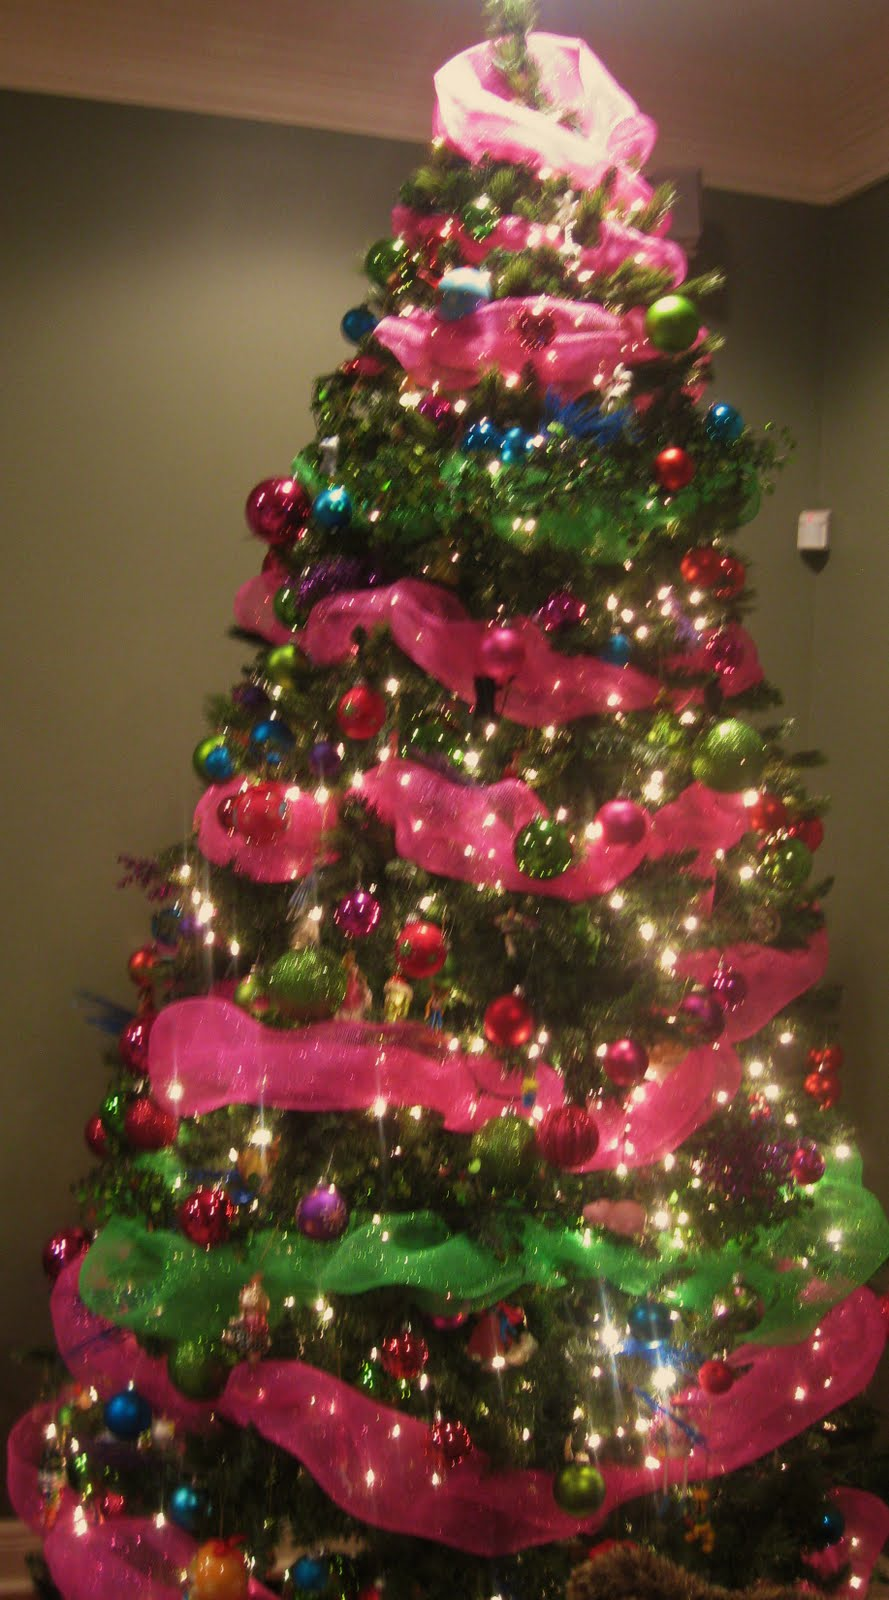 pink and green christmas tree decorations merry christmas - Green Christmas Tree Decorations